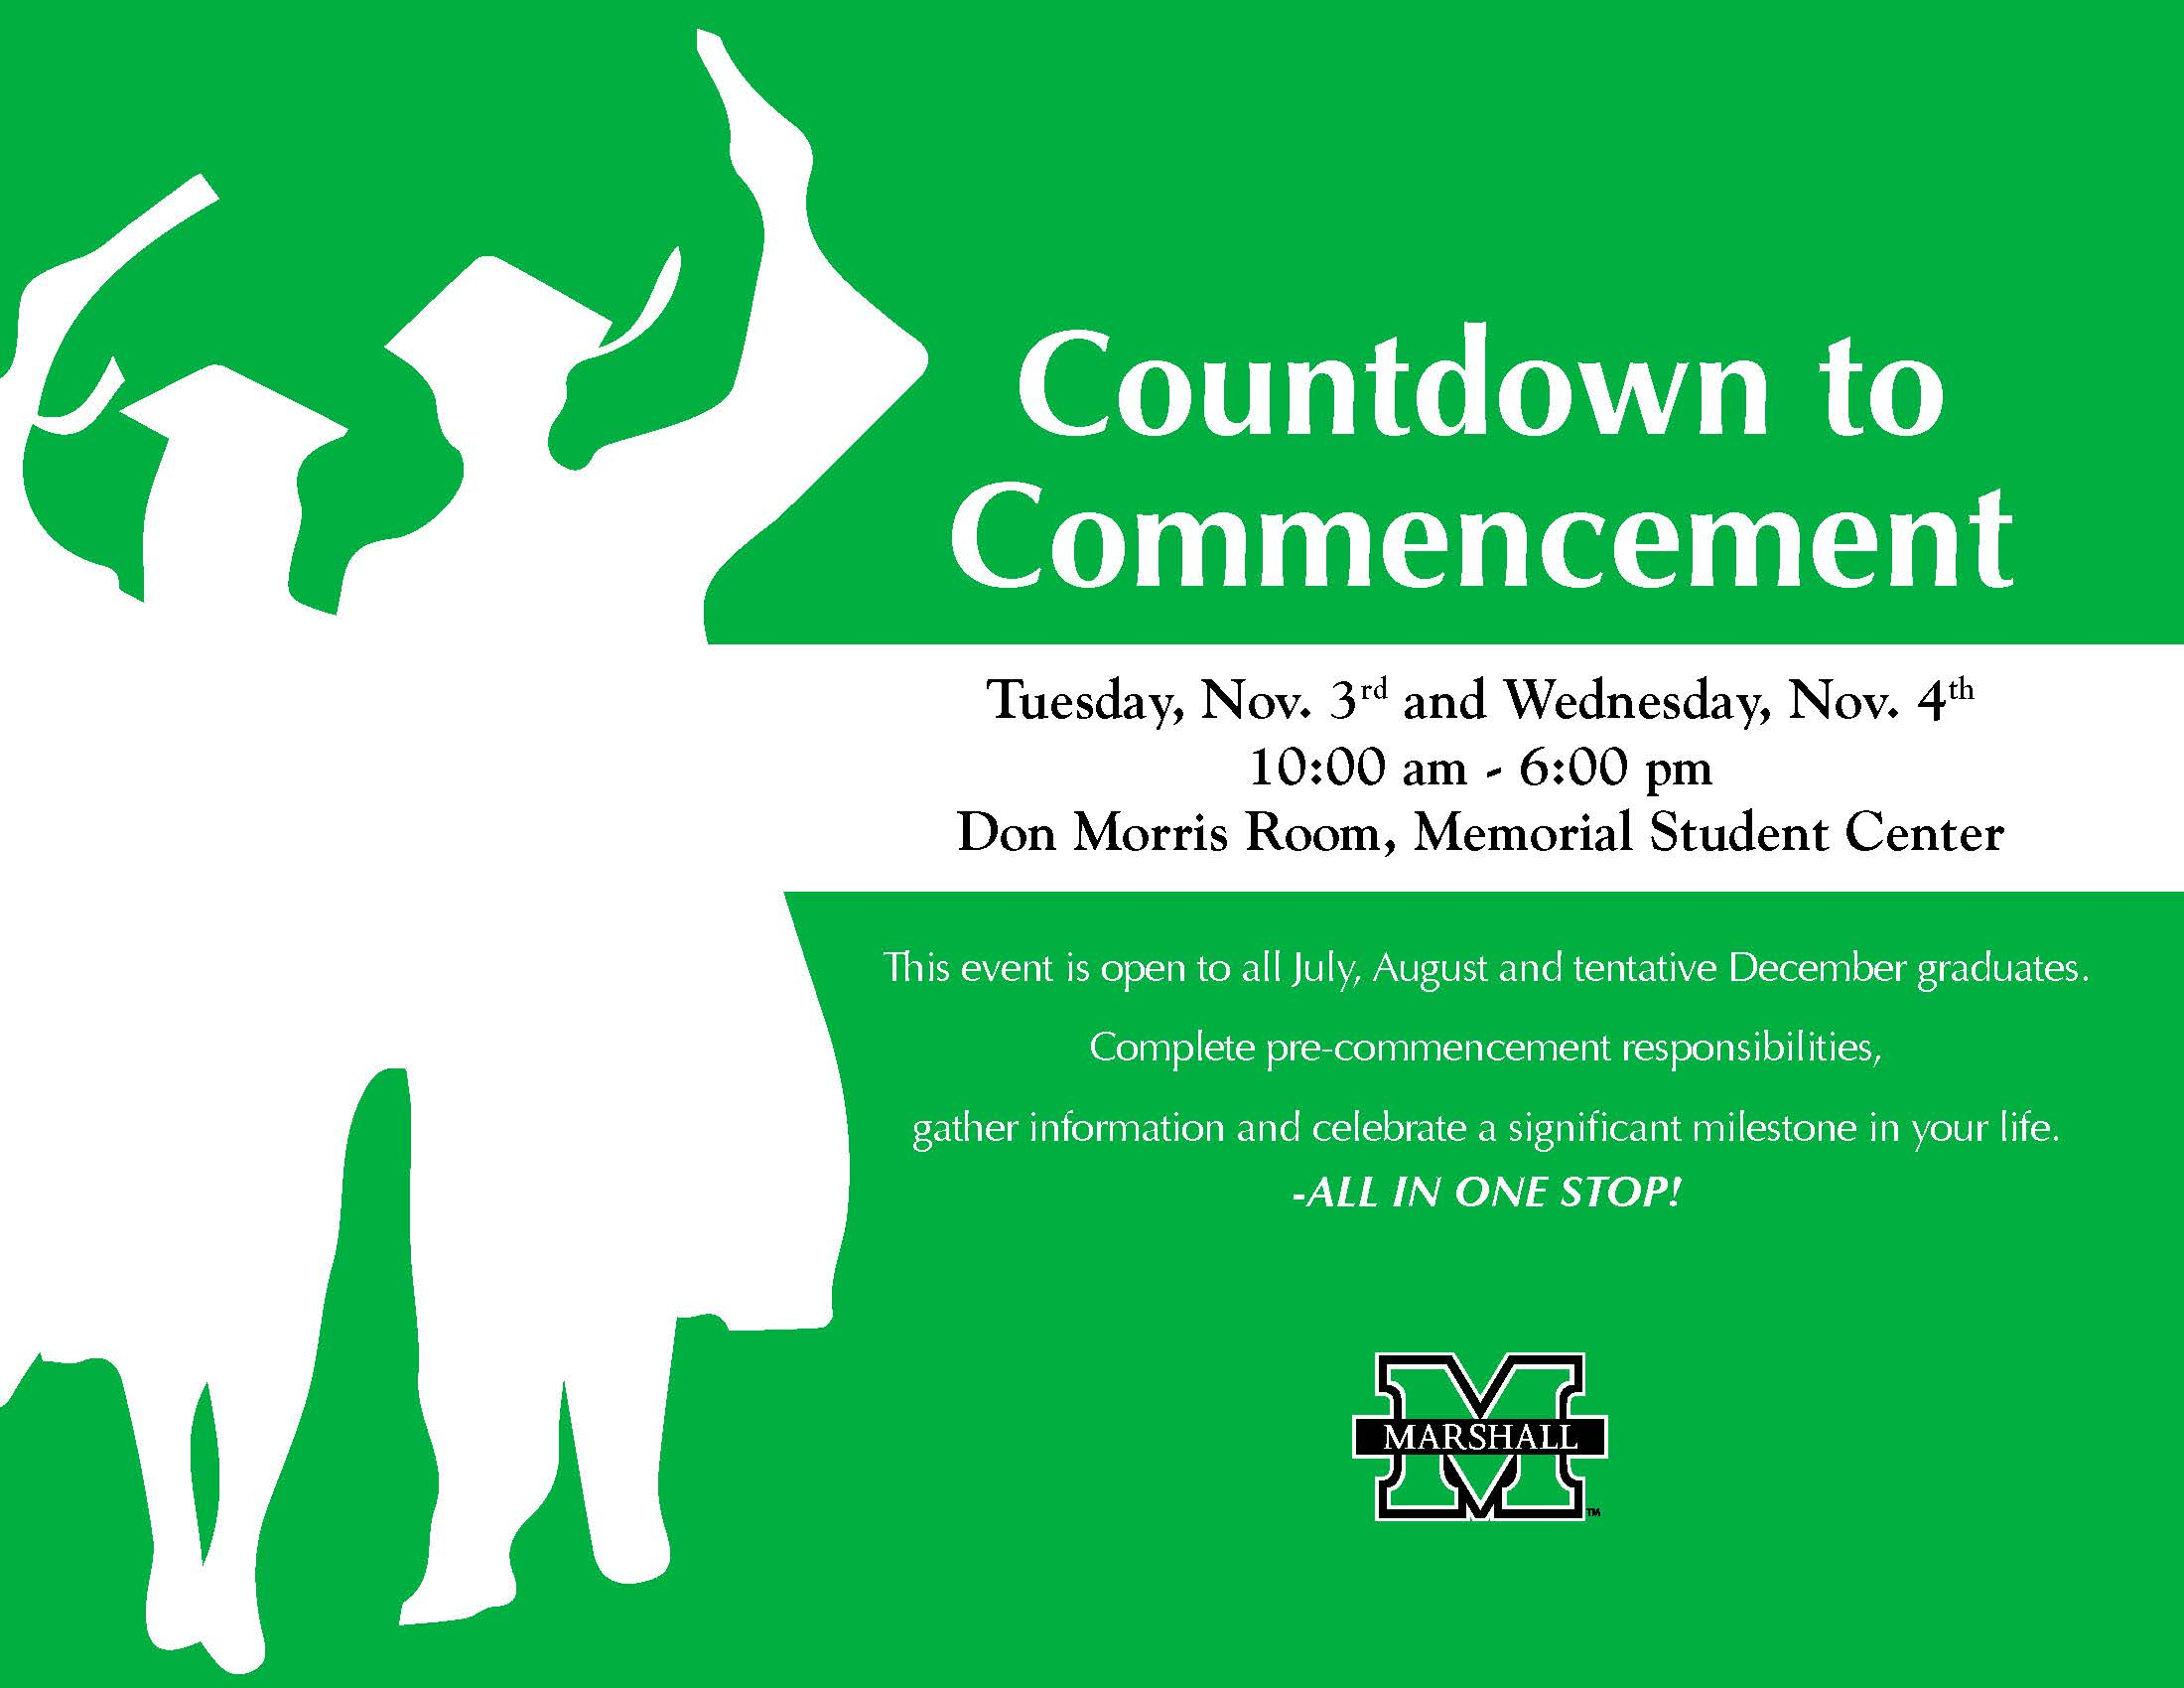 CountdowntoCommencement_Nov2015